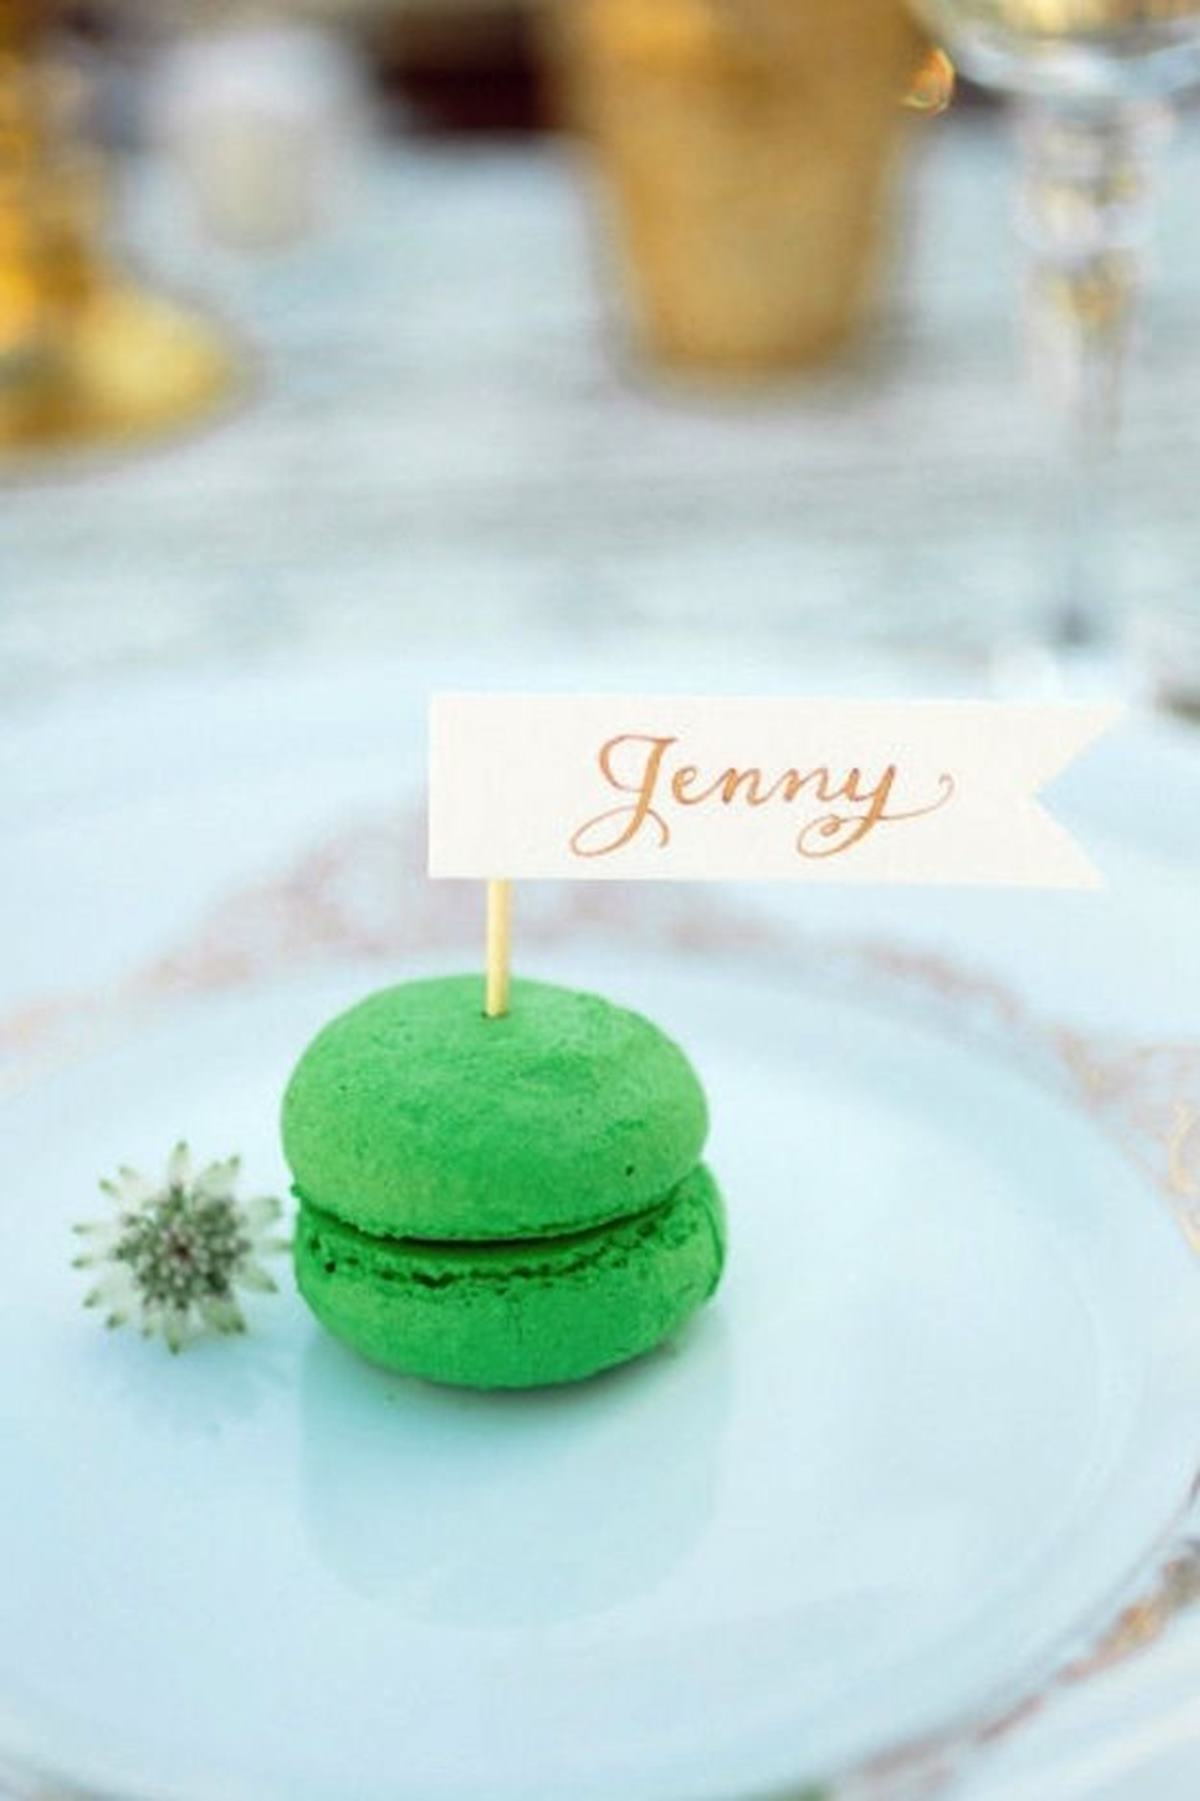 Delicious personalised macaroons